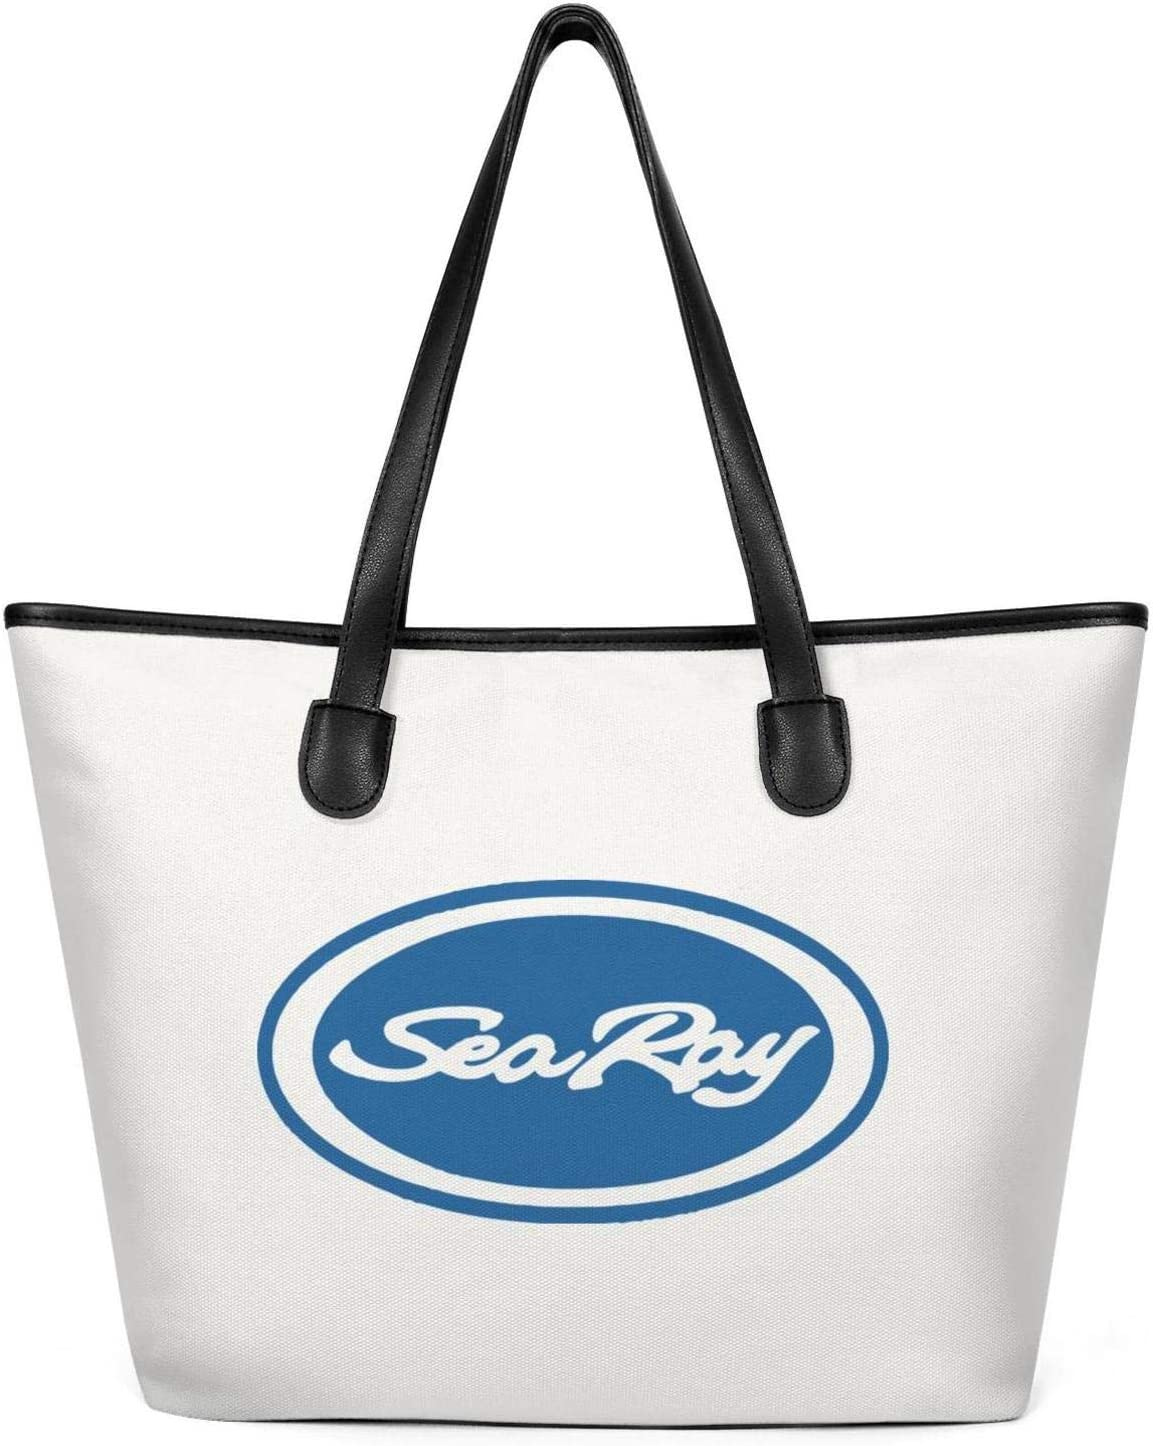 Cute Tote Bag for WomanSea-Ray-logo-srw Canvas Spacious and Roomy School Handbags